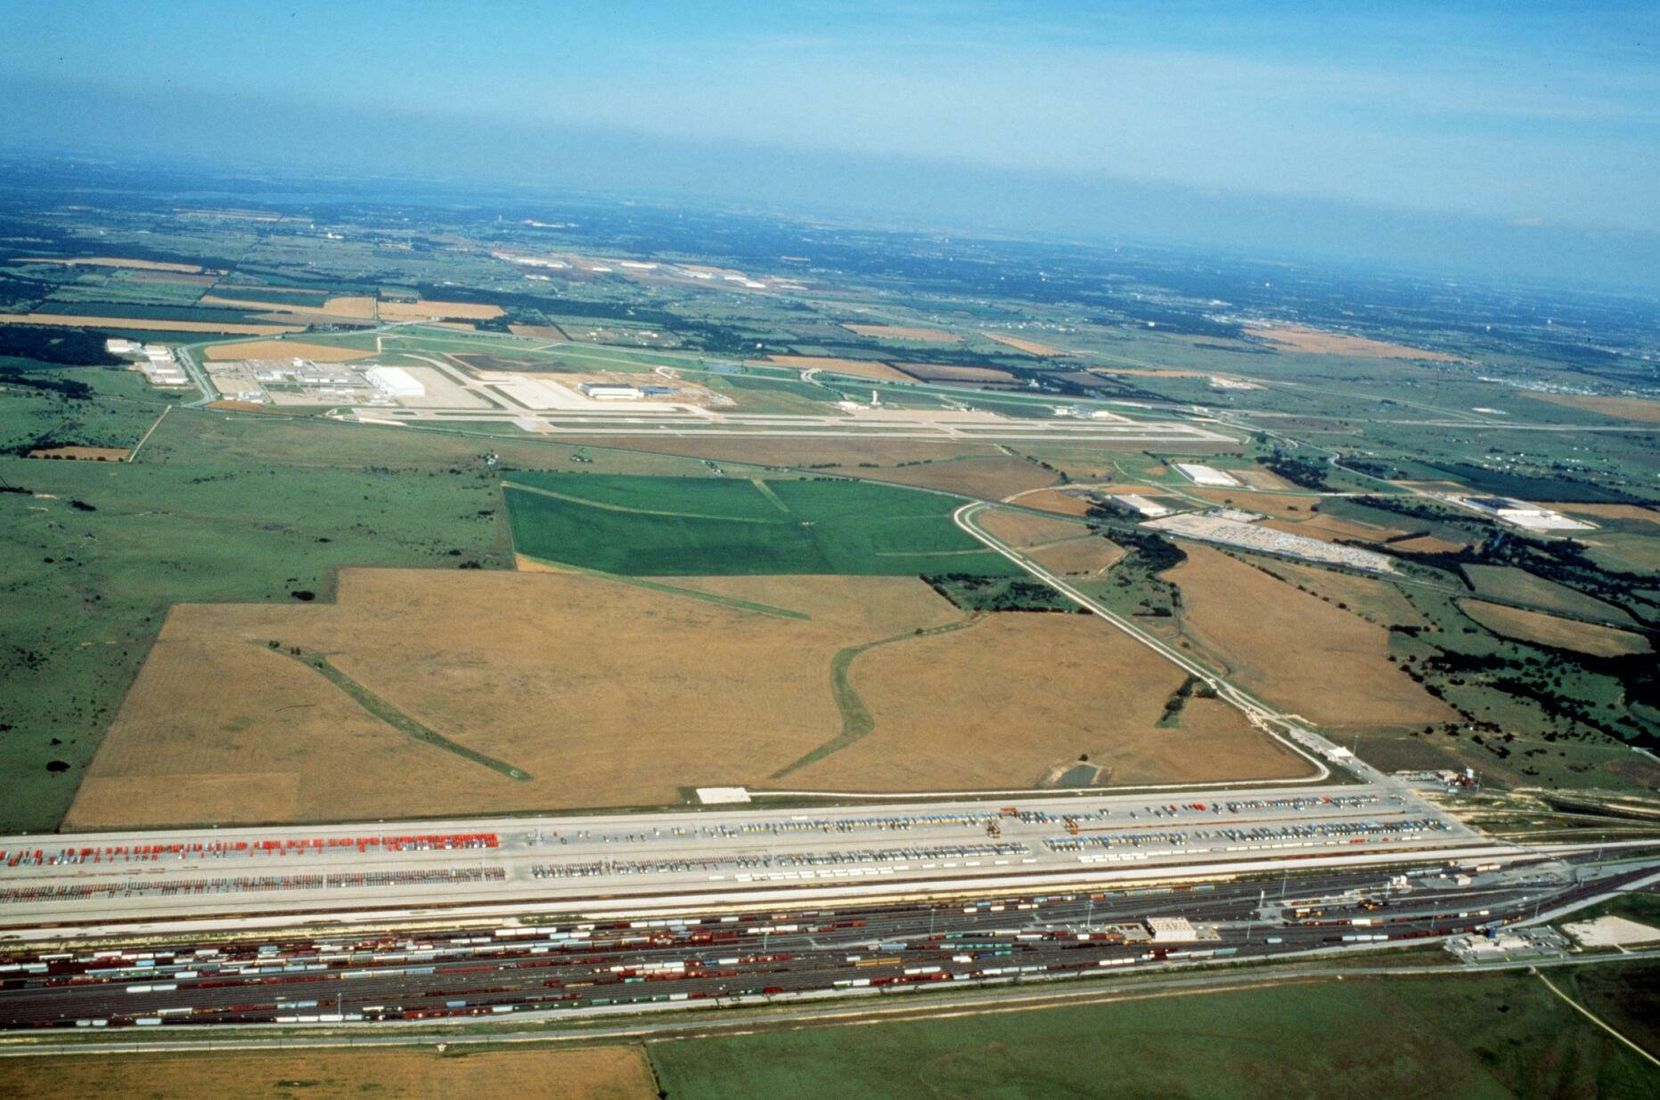 In 1997, much of the land surrounding the Alliance Airport in North Fort Worth was still undeveloped.